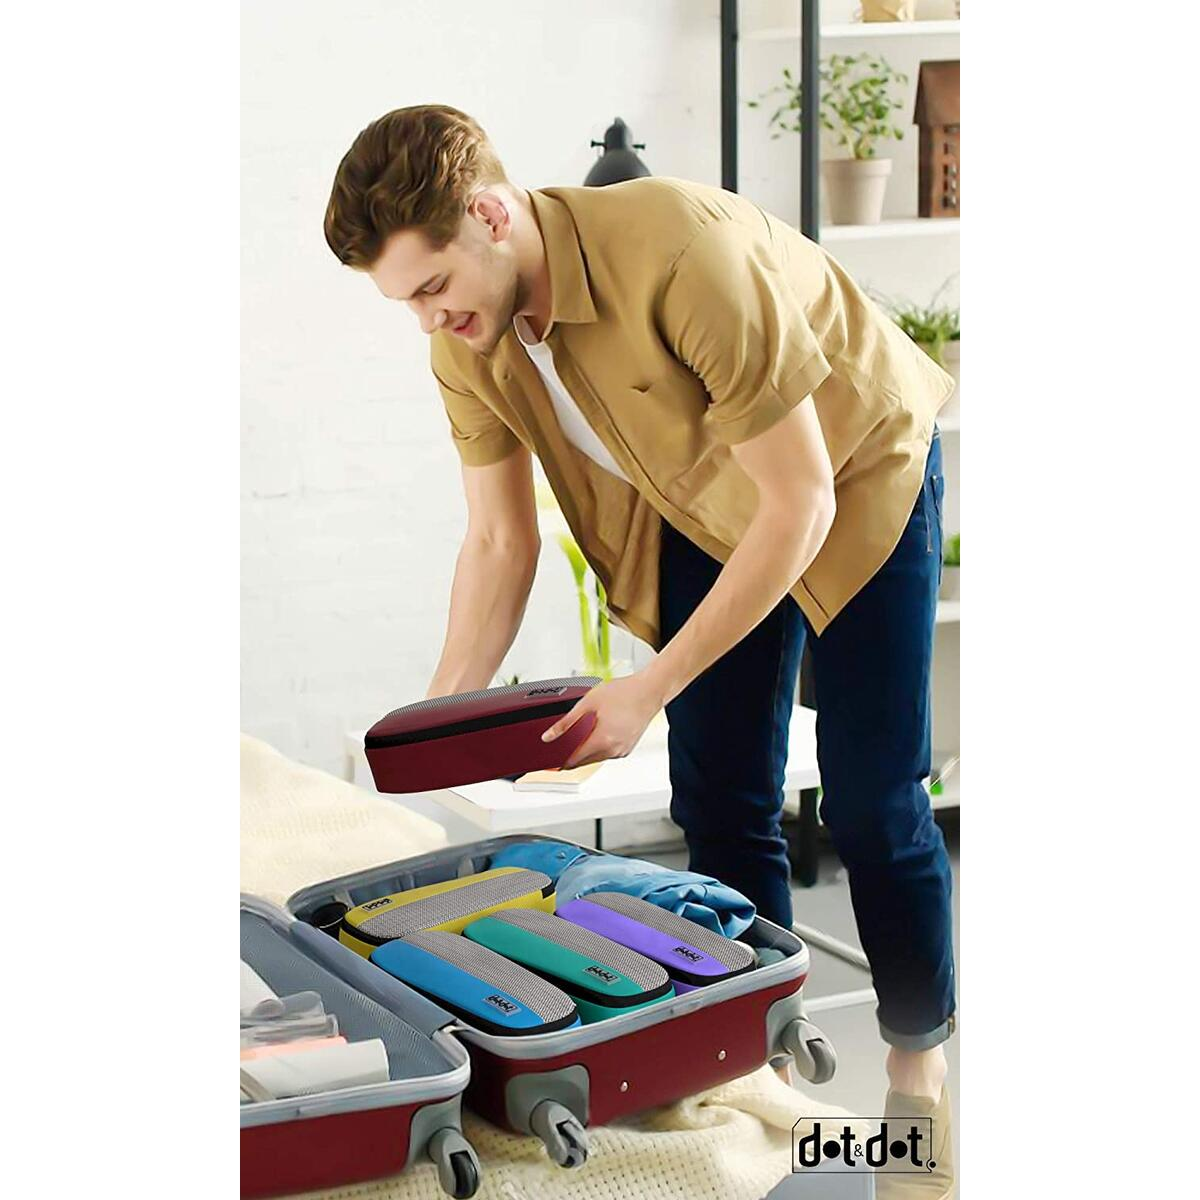 Dot&Dot Slim Packing Cubes for Travel - Luggage Accessories Organizers